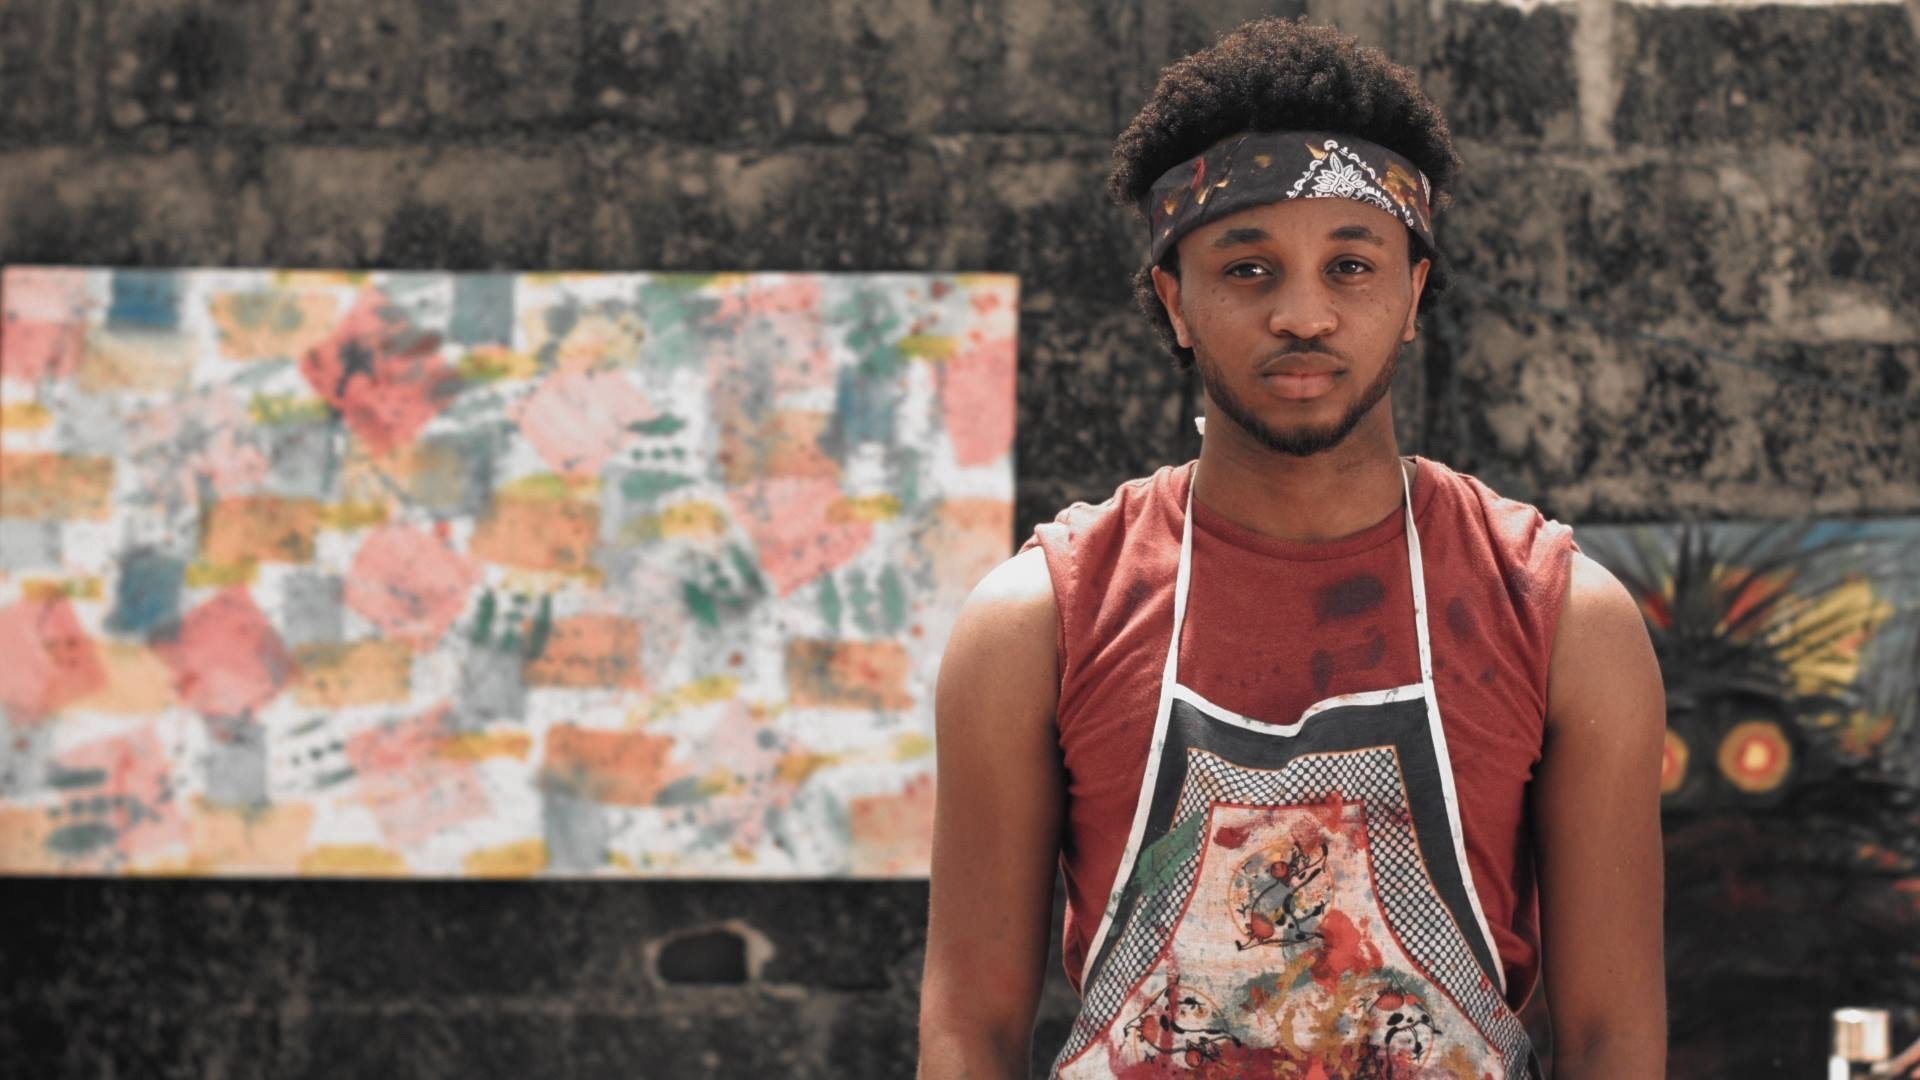 Uzee on his grind as a self-taught artist